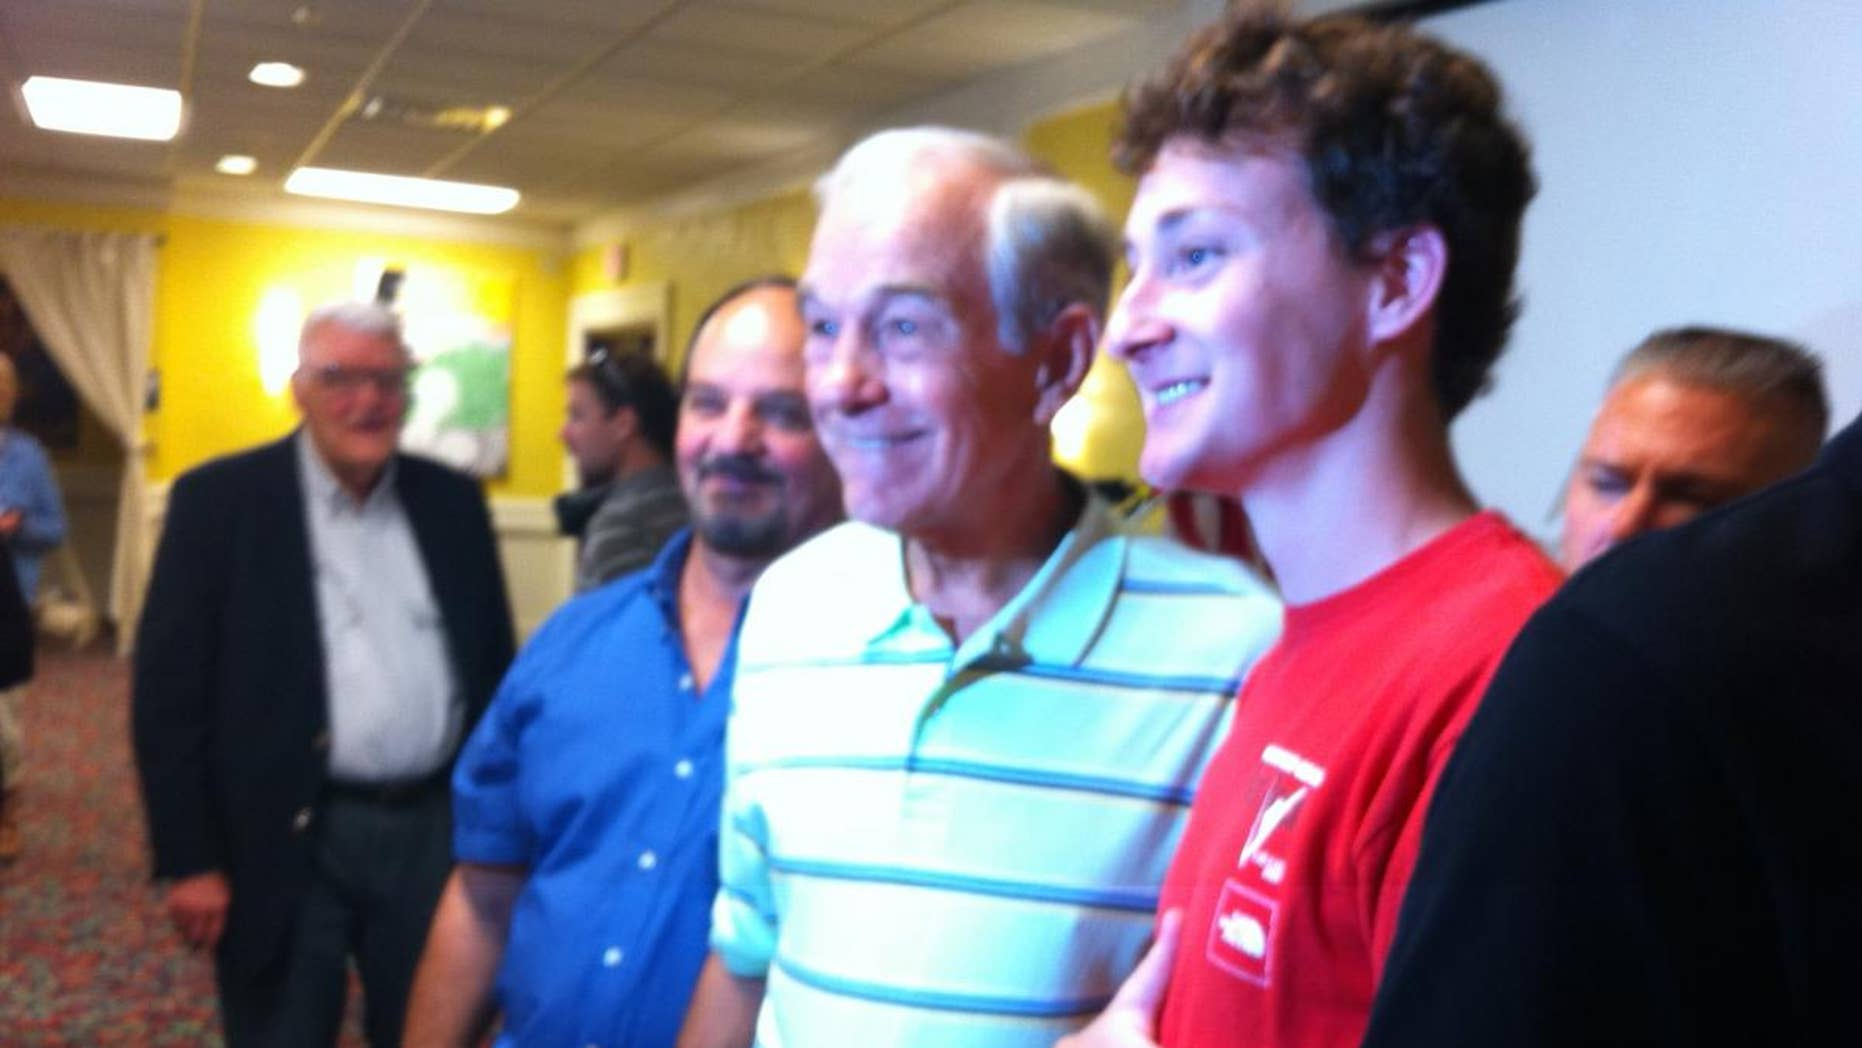 Ron Paul poses for a photo at Wednesday's campaign event in Mason City, Iowa. (Fox News Photo/Jake Gibson)